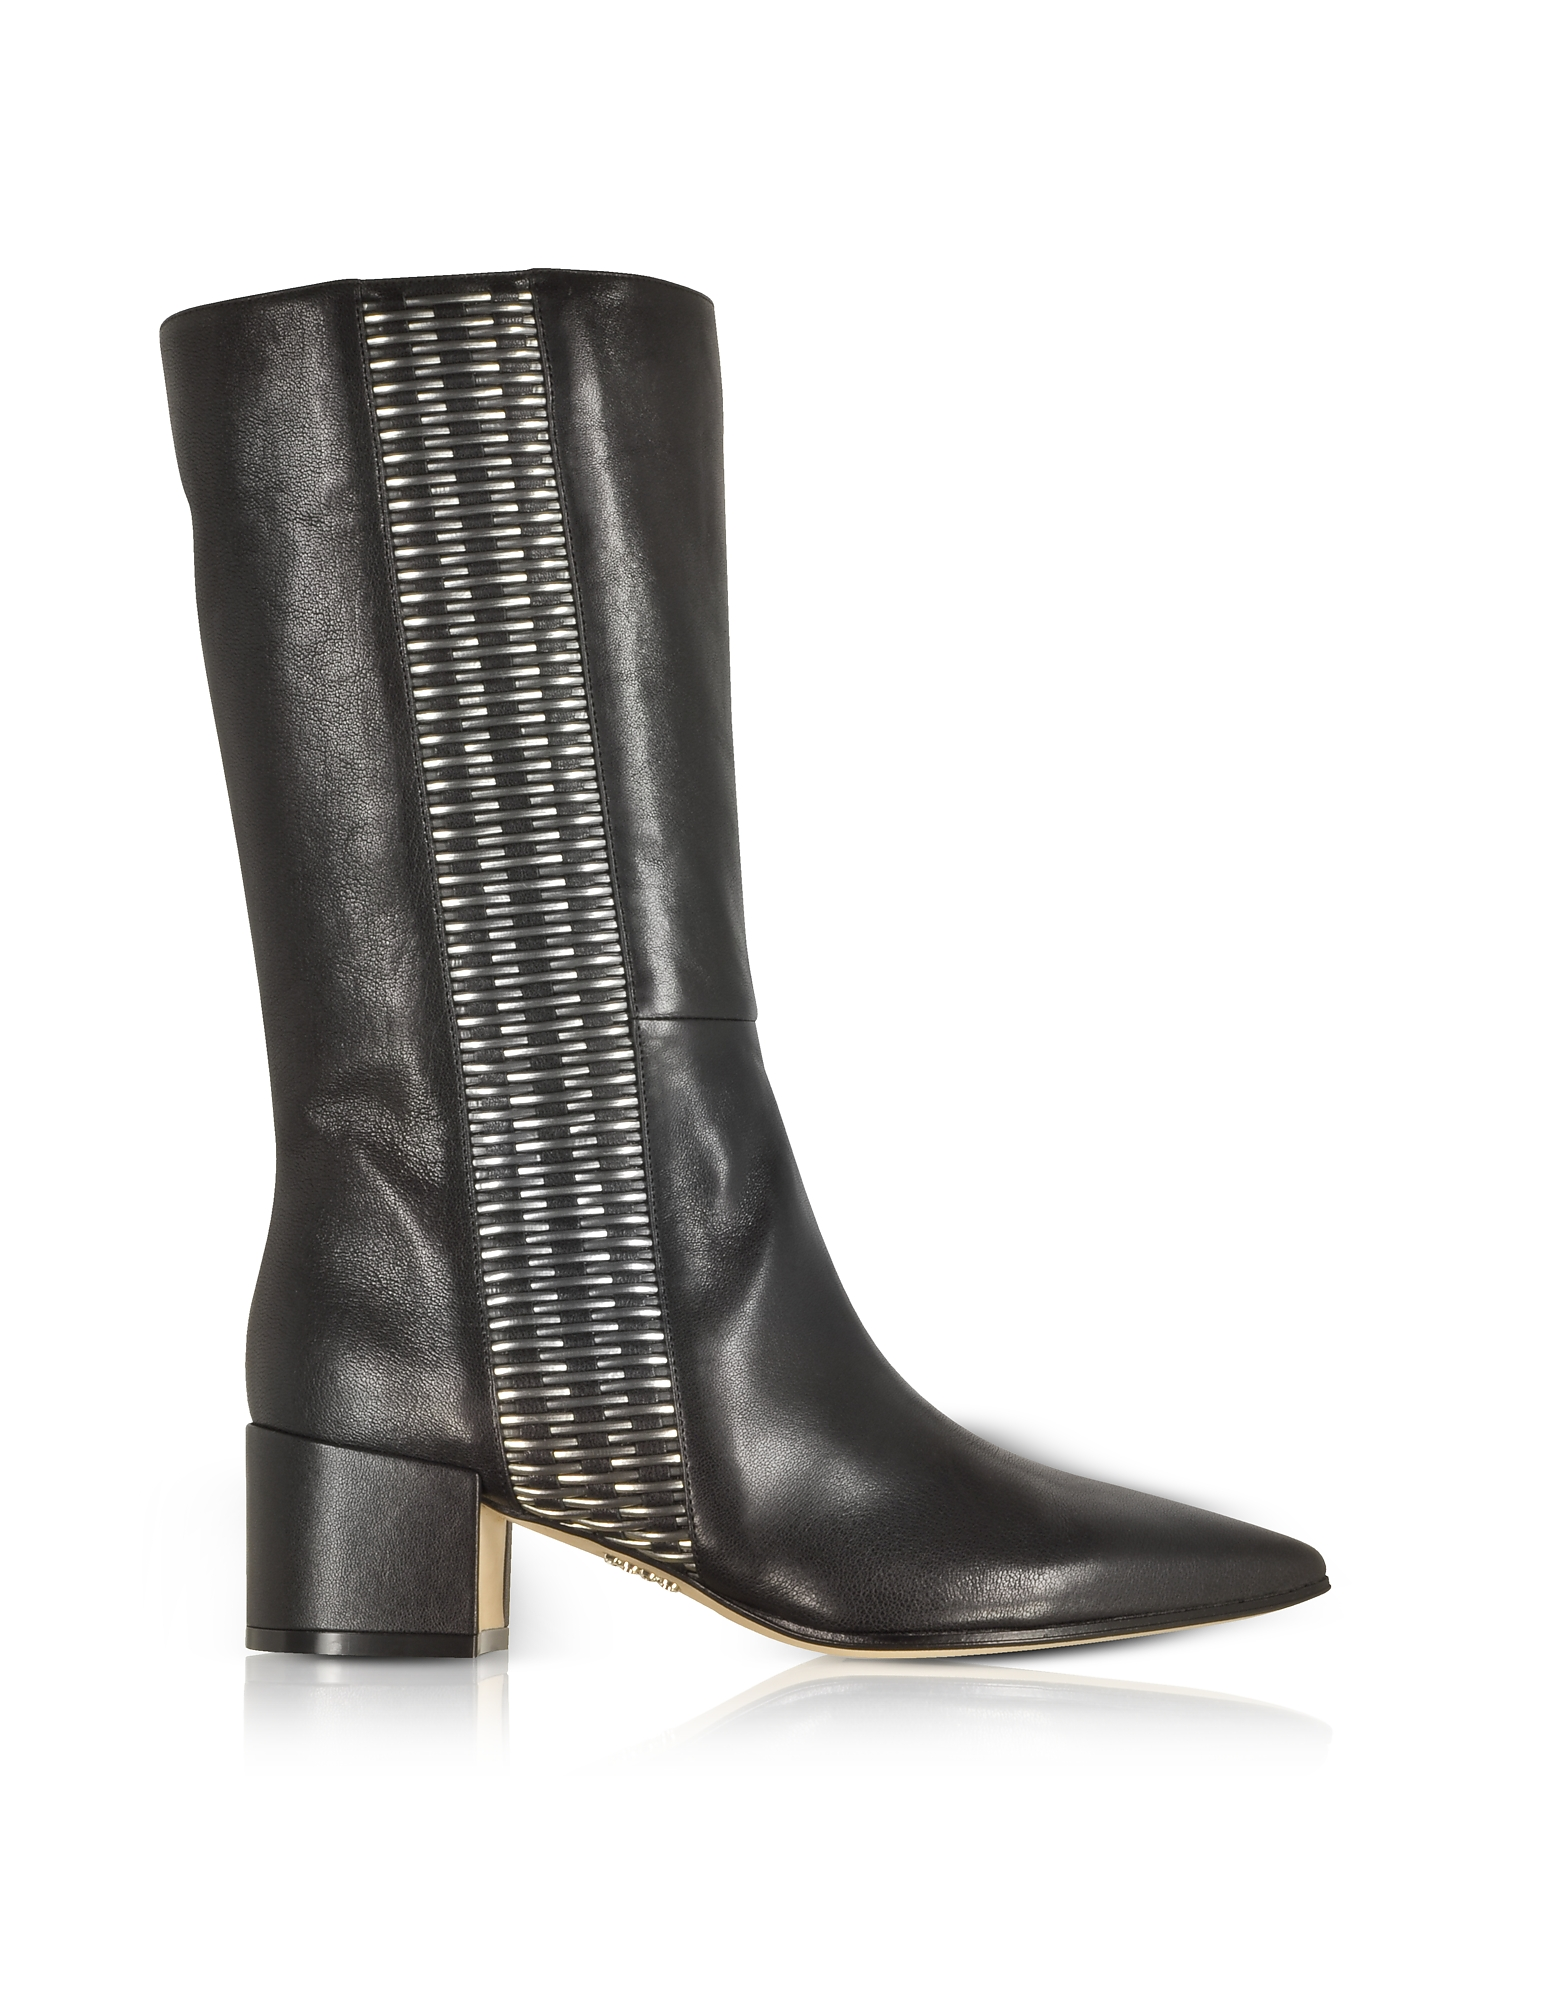 Rodo Shoes, Black and Silver Woven Leather Pointed Toe Mid Heel Boots